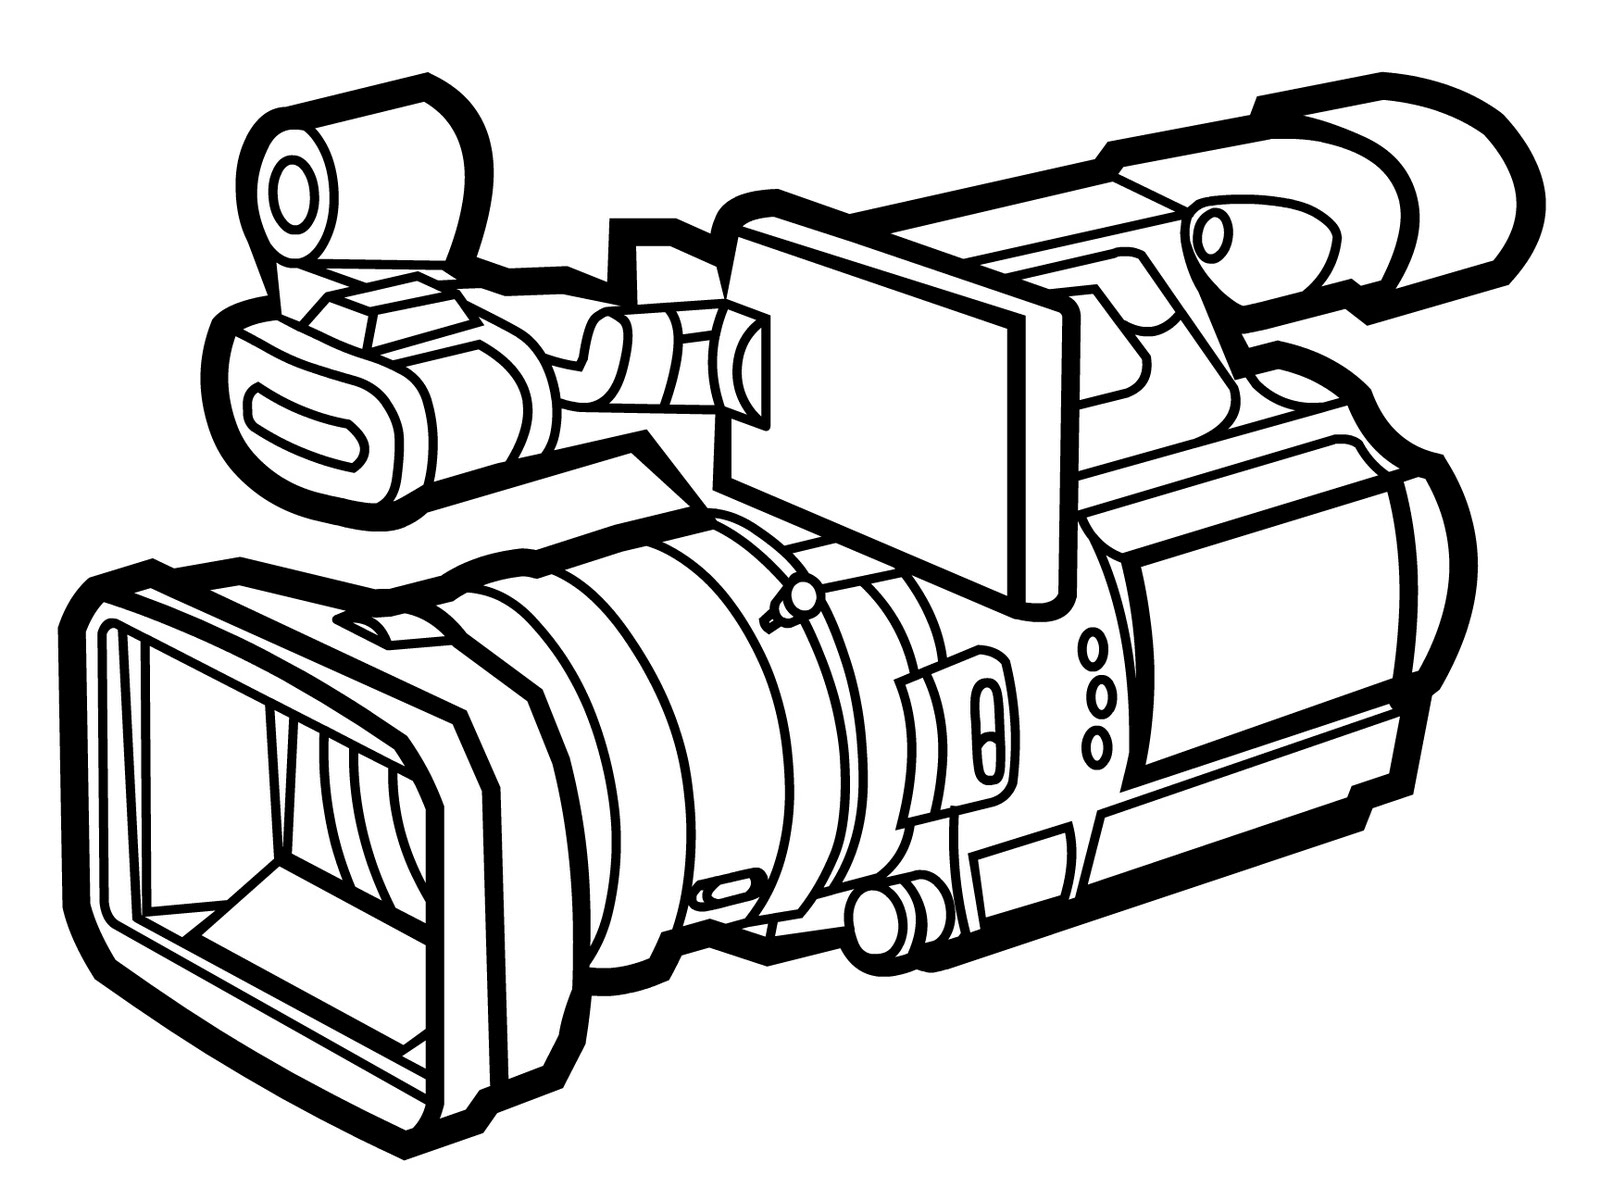 Line Drawing Camera : Camera line art clipart best